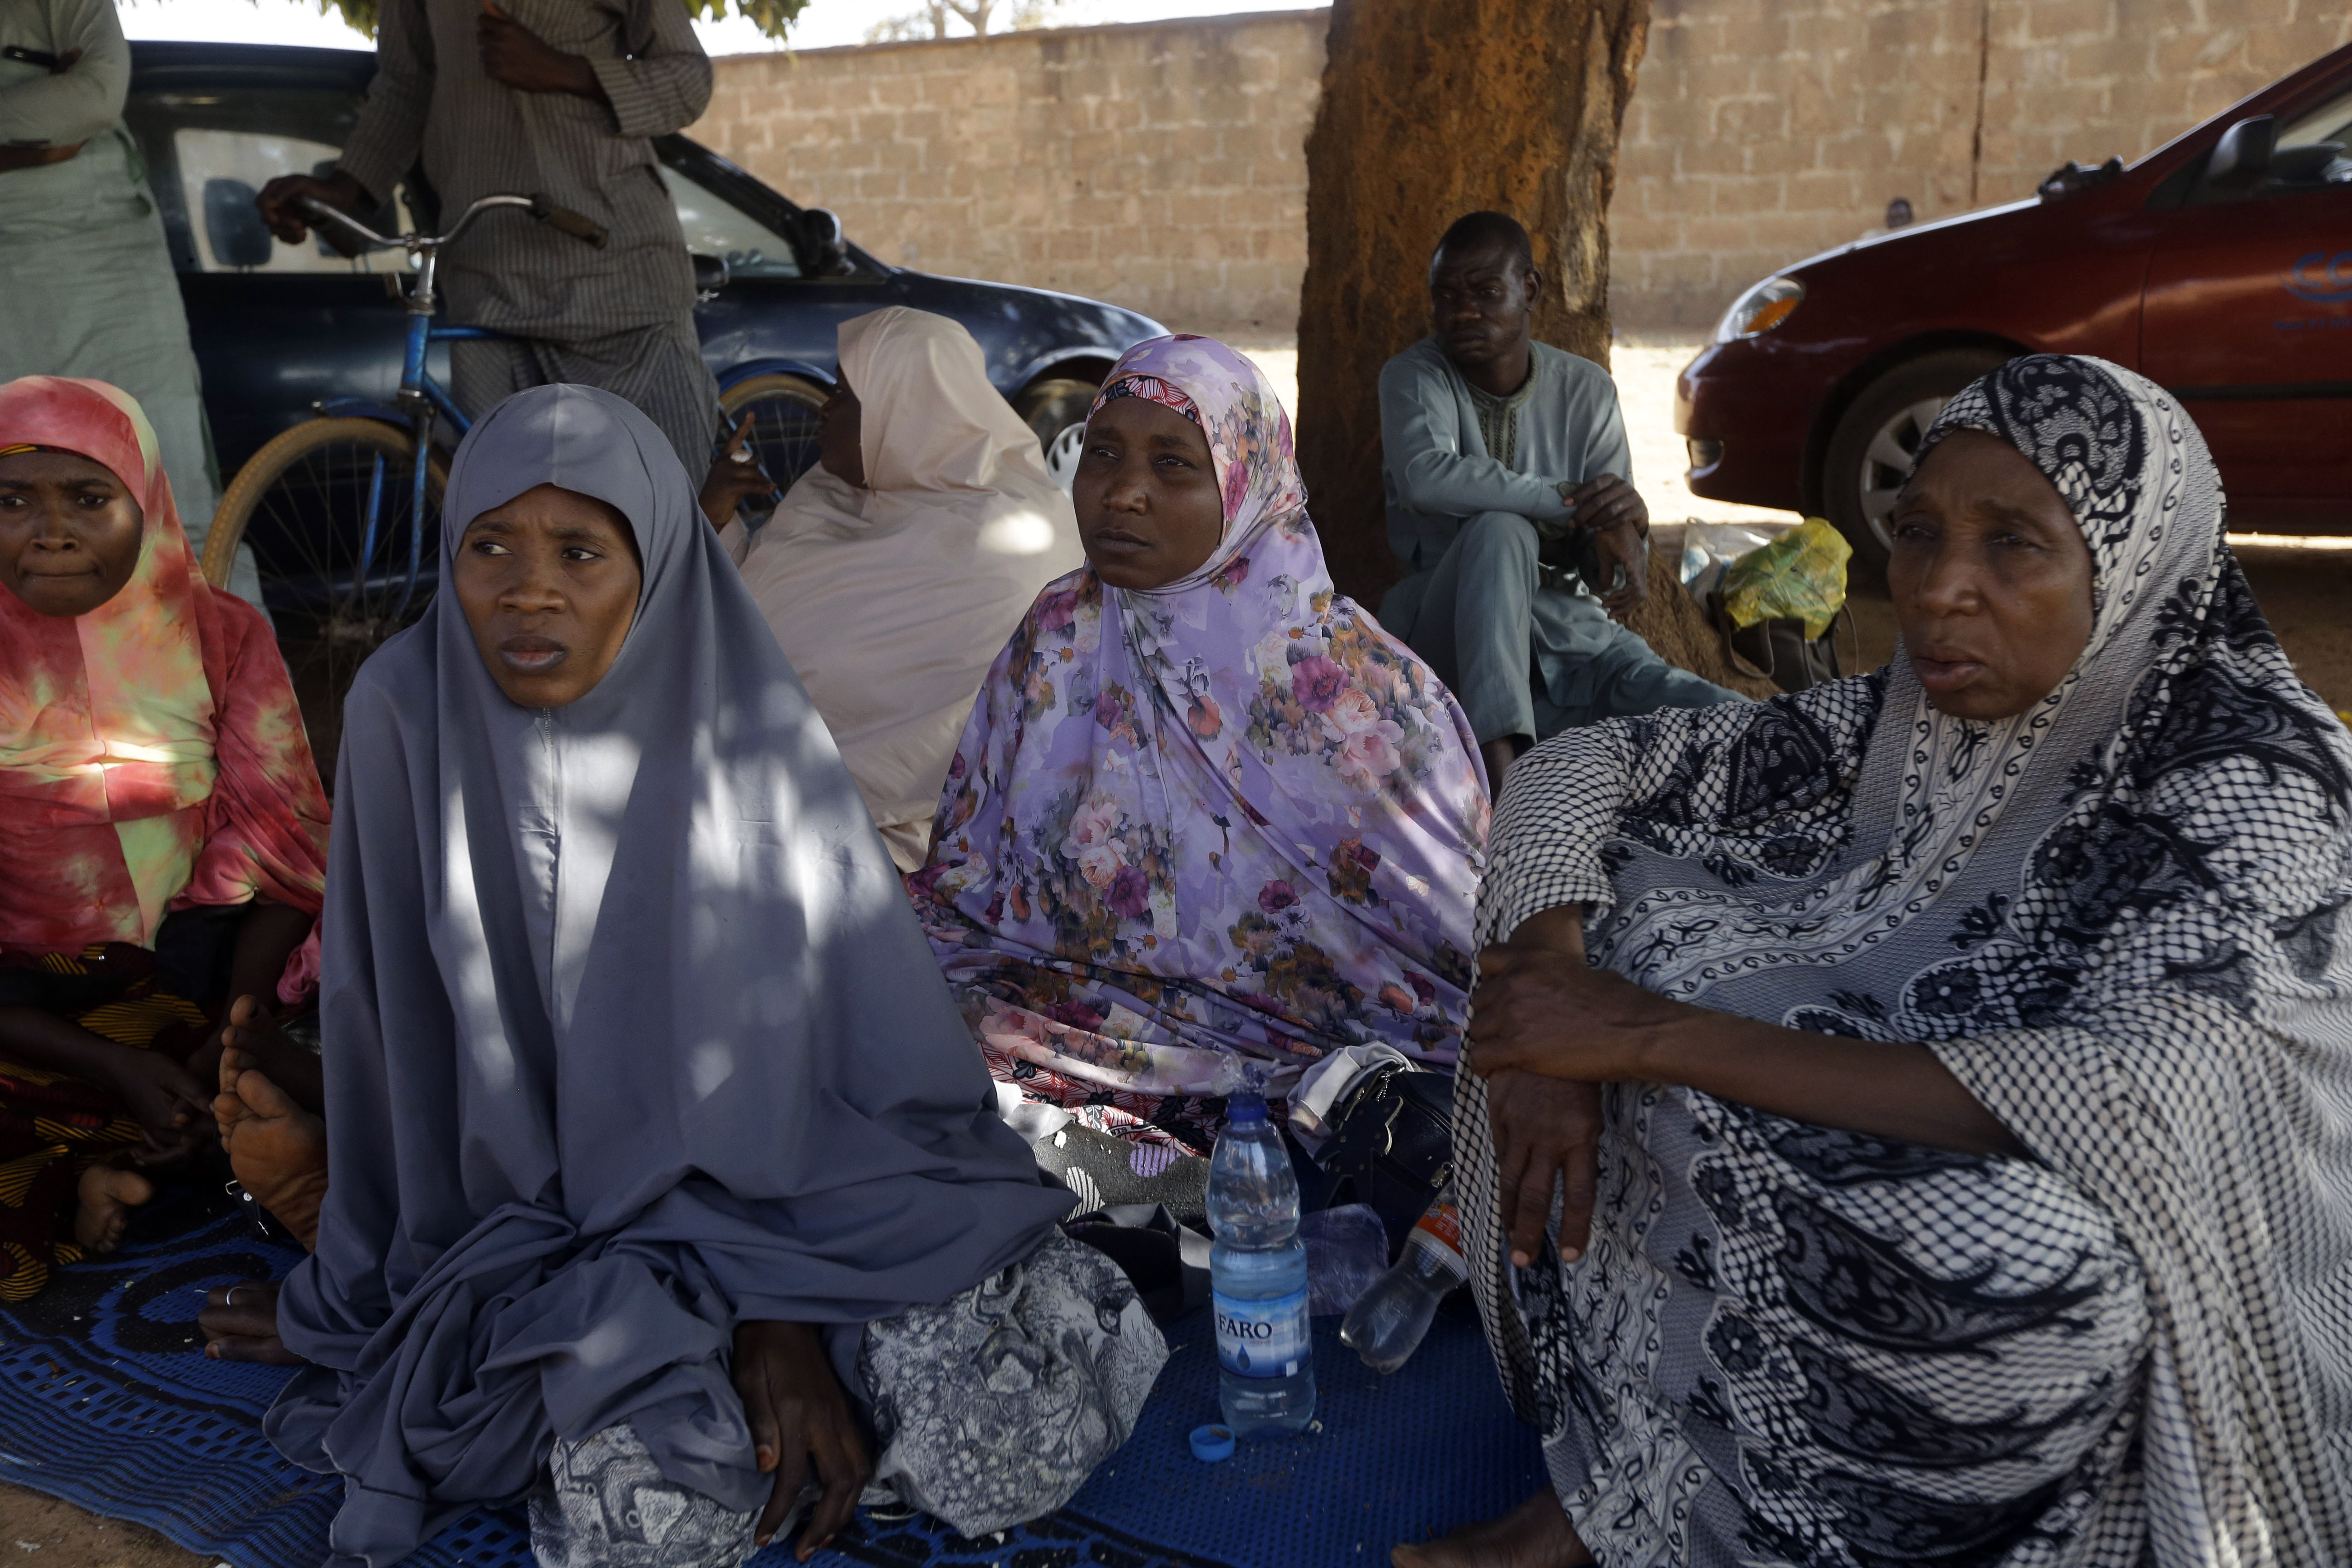 Parents of the missing Government Science secondary school students wait for news on their children in Kankara , Nigeria, Tuesday, Dec. 15, 2020. Rebels from the Boko Haram extremist group claimed responsibility Tuesday for abducting hundreds of boys from a school in Nigeria's northern Katsina State last week in one of the largest such attacks in years, raising fears of a growing wave of violence in the region. Photo: AP